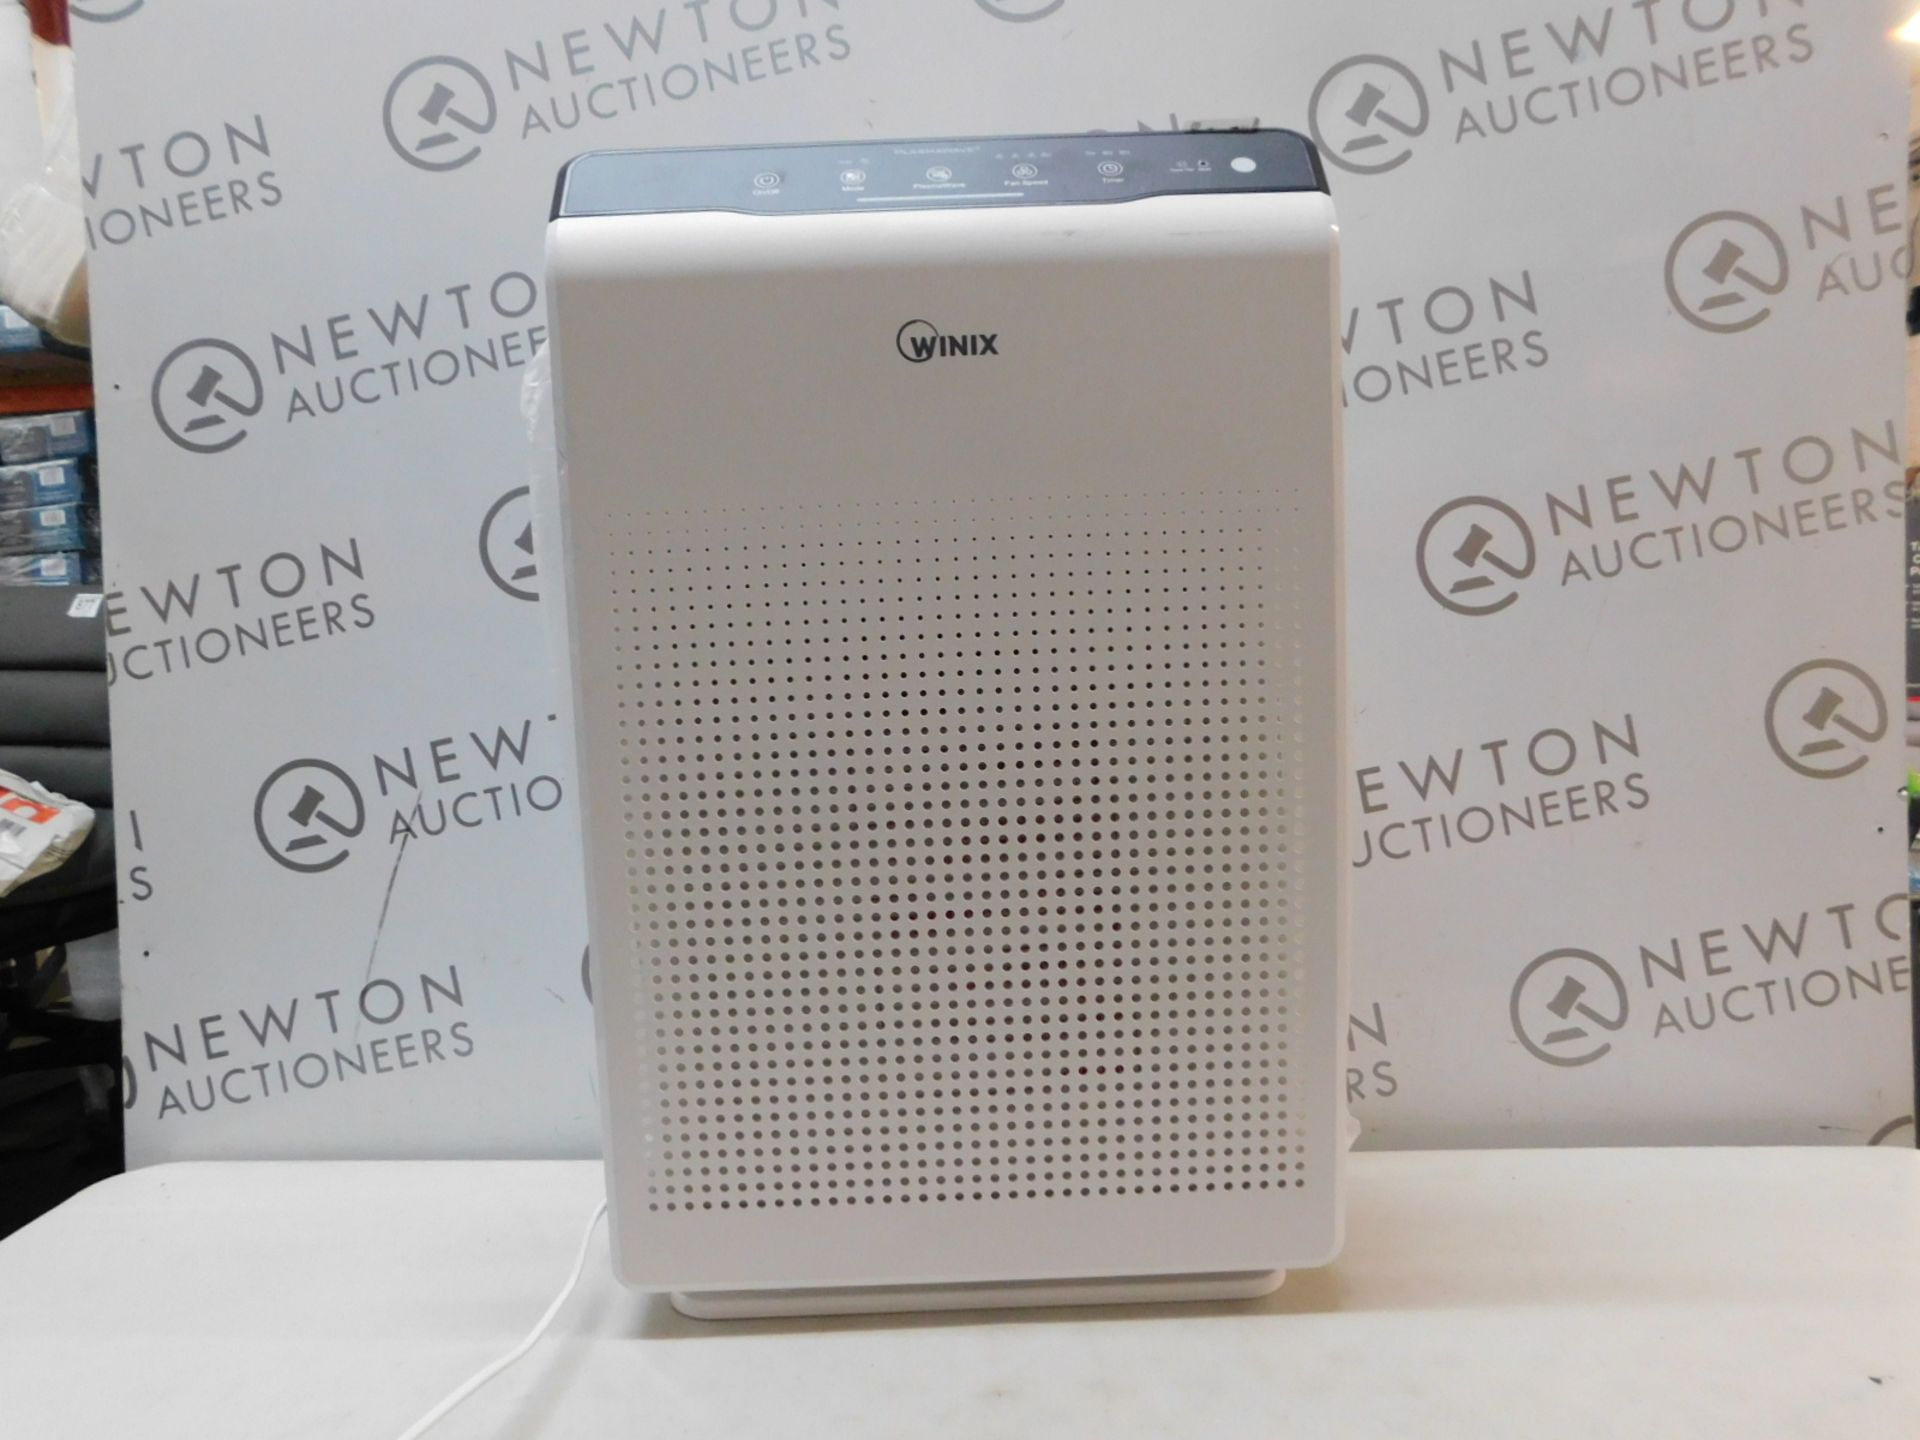 1 WINIX 2020EU TRUE HEPA AIR PURIFIER WITH 4-STAGE CLEANING RRP £299